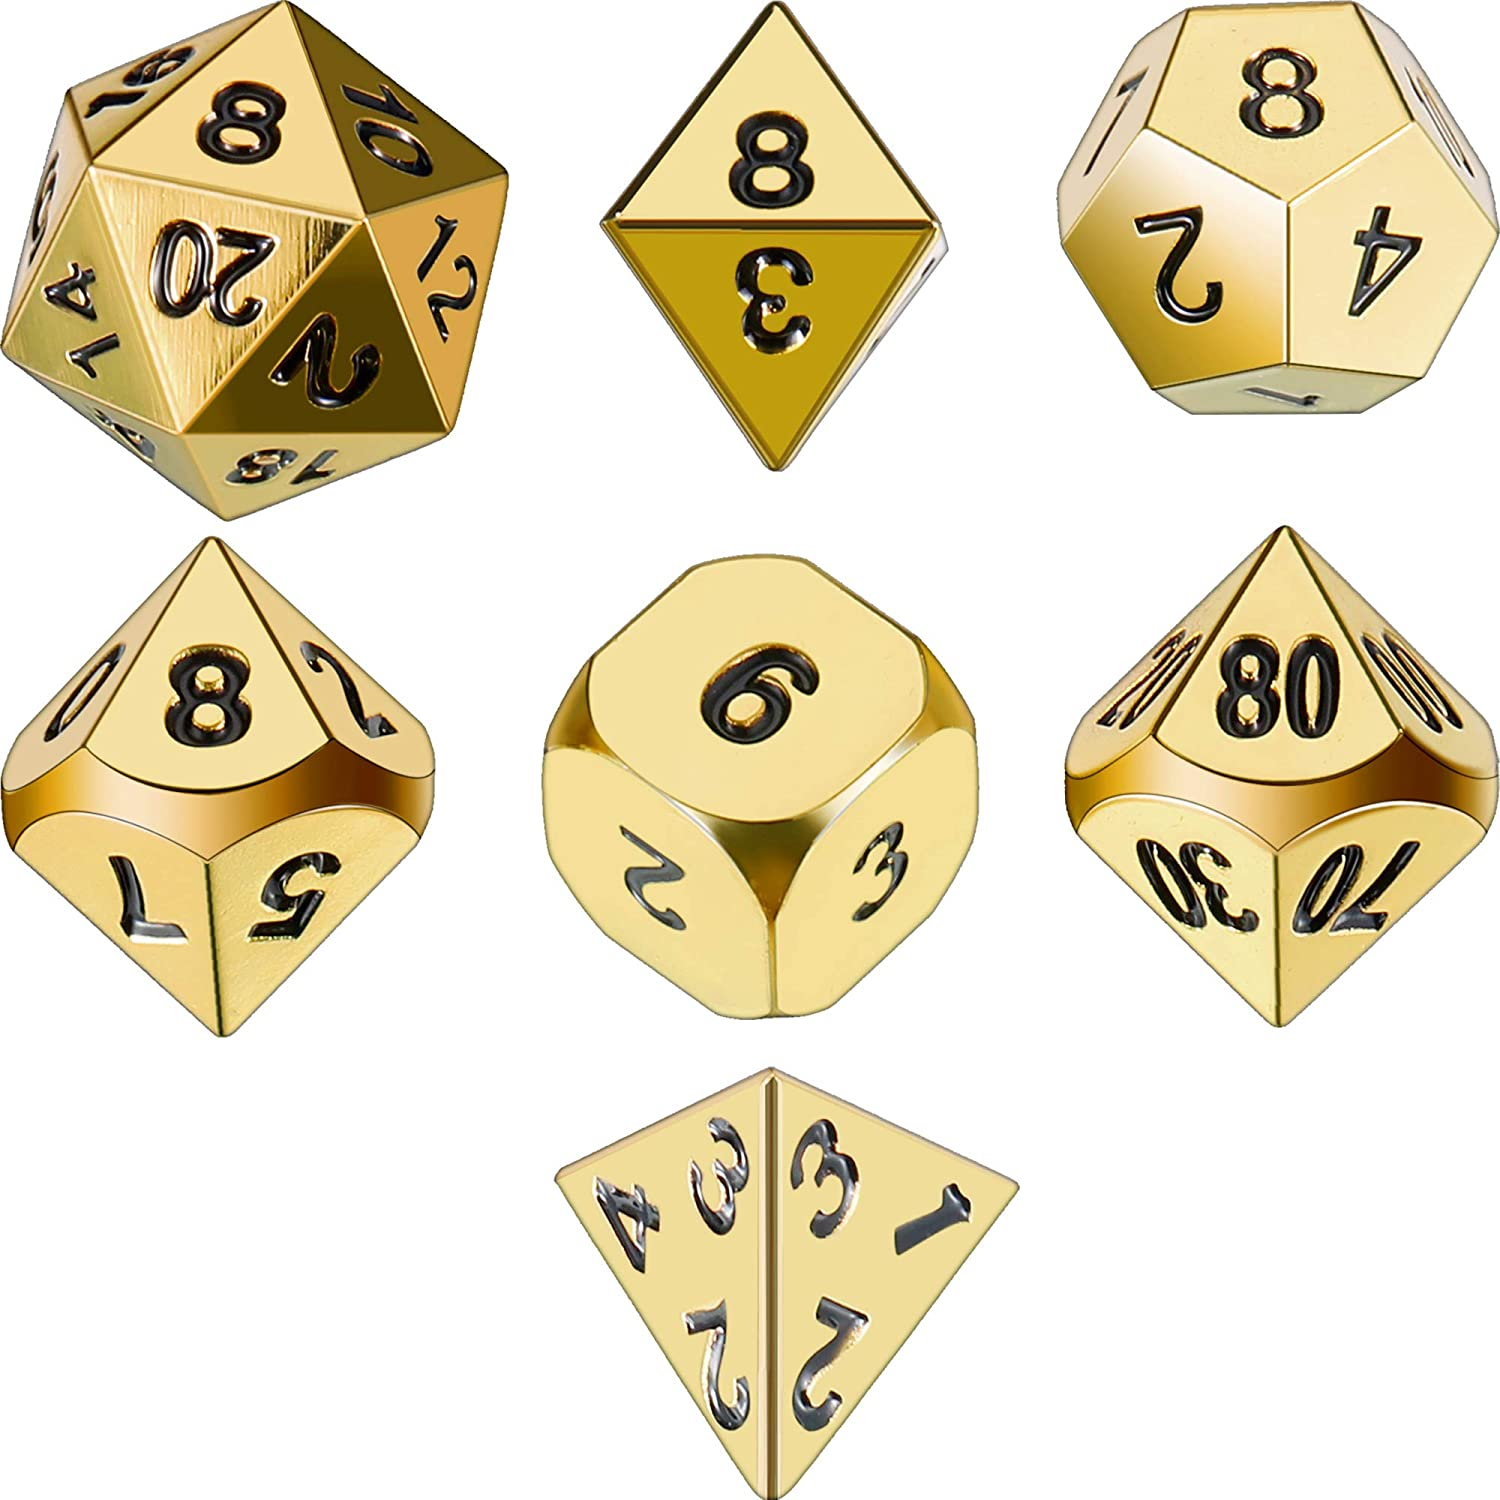 TecUnite 7 Die Metal Polyhedral Dice Set DND Role Playing Game Dice Set with Storage Bag for RPG Dungeons and Dragons D&D Math Teaching (Bright Gold)